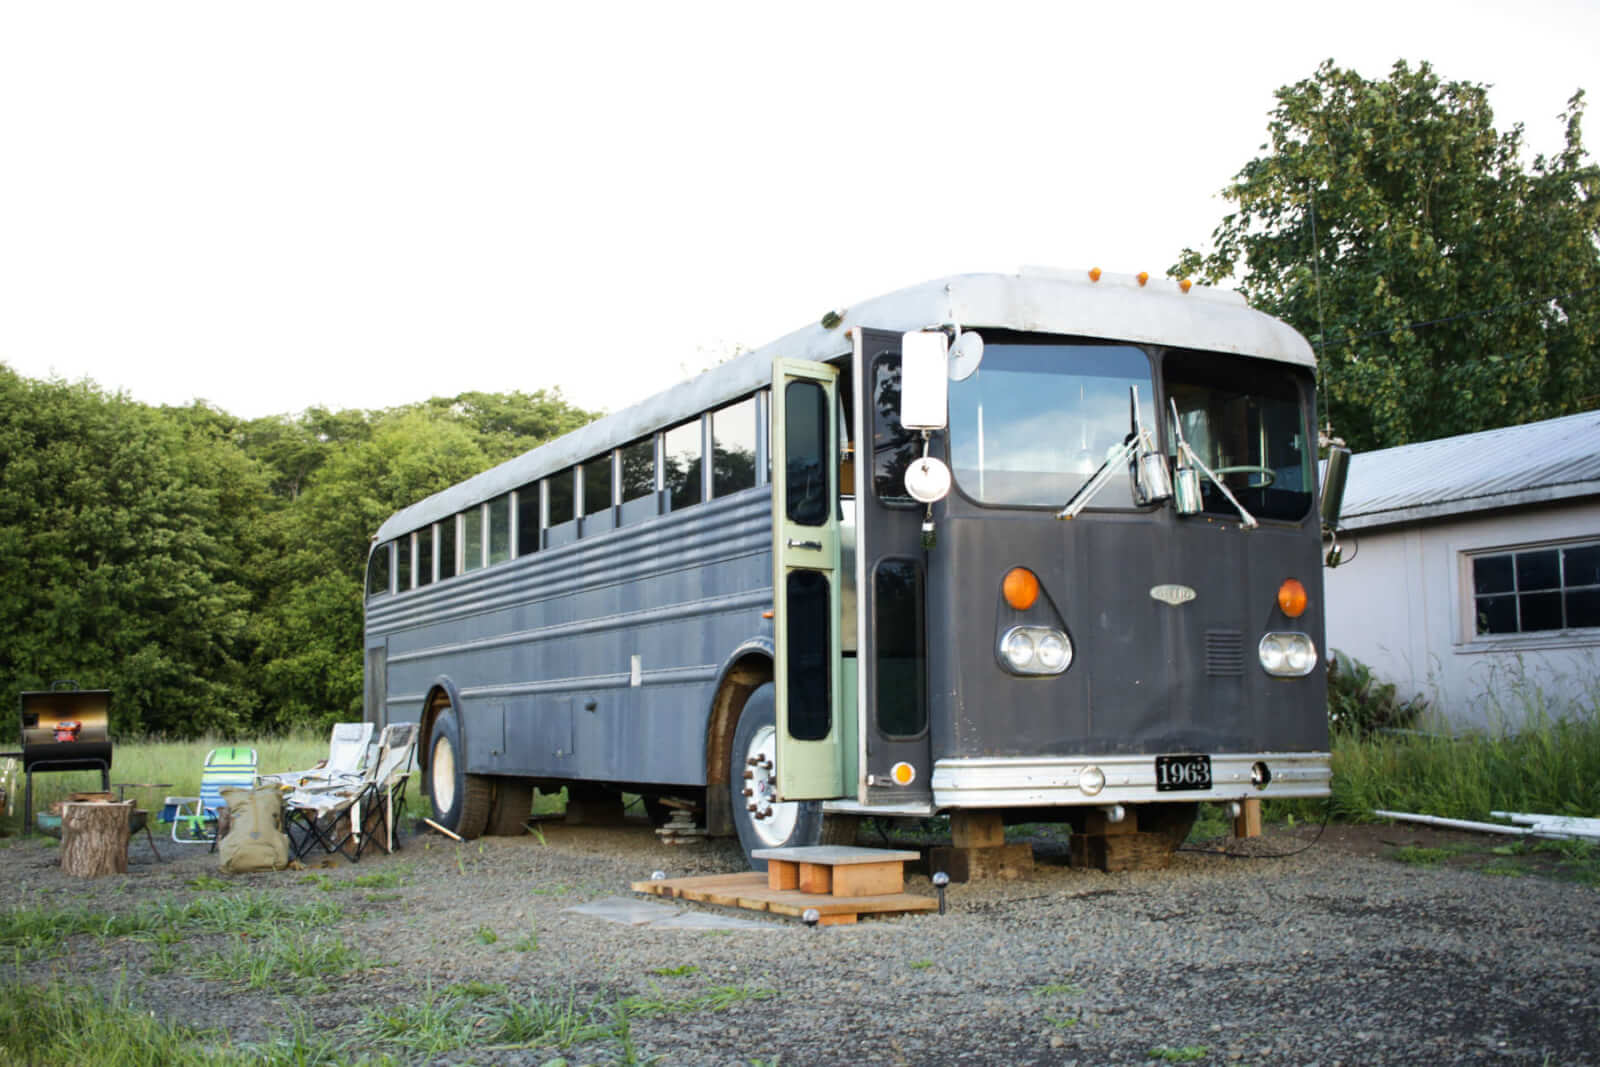 old-oly-hops-farm-the-1963-highliner-school-bus-bus-lodging-amenity in Washington